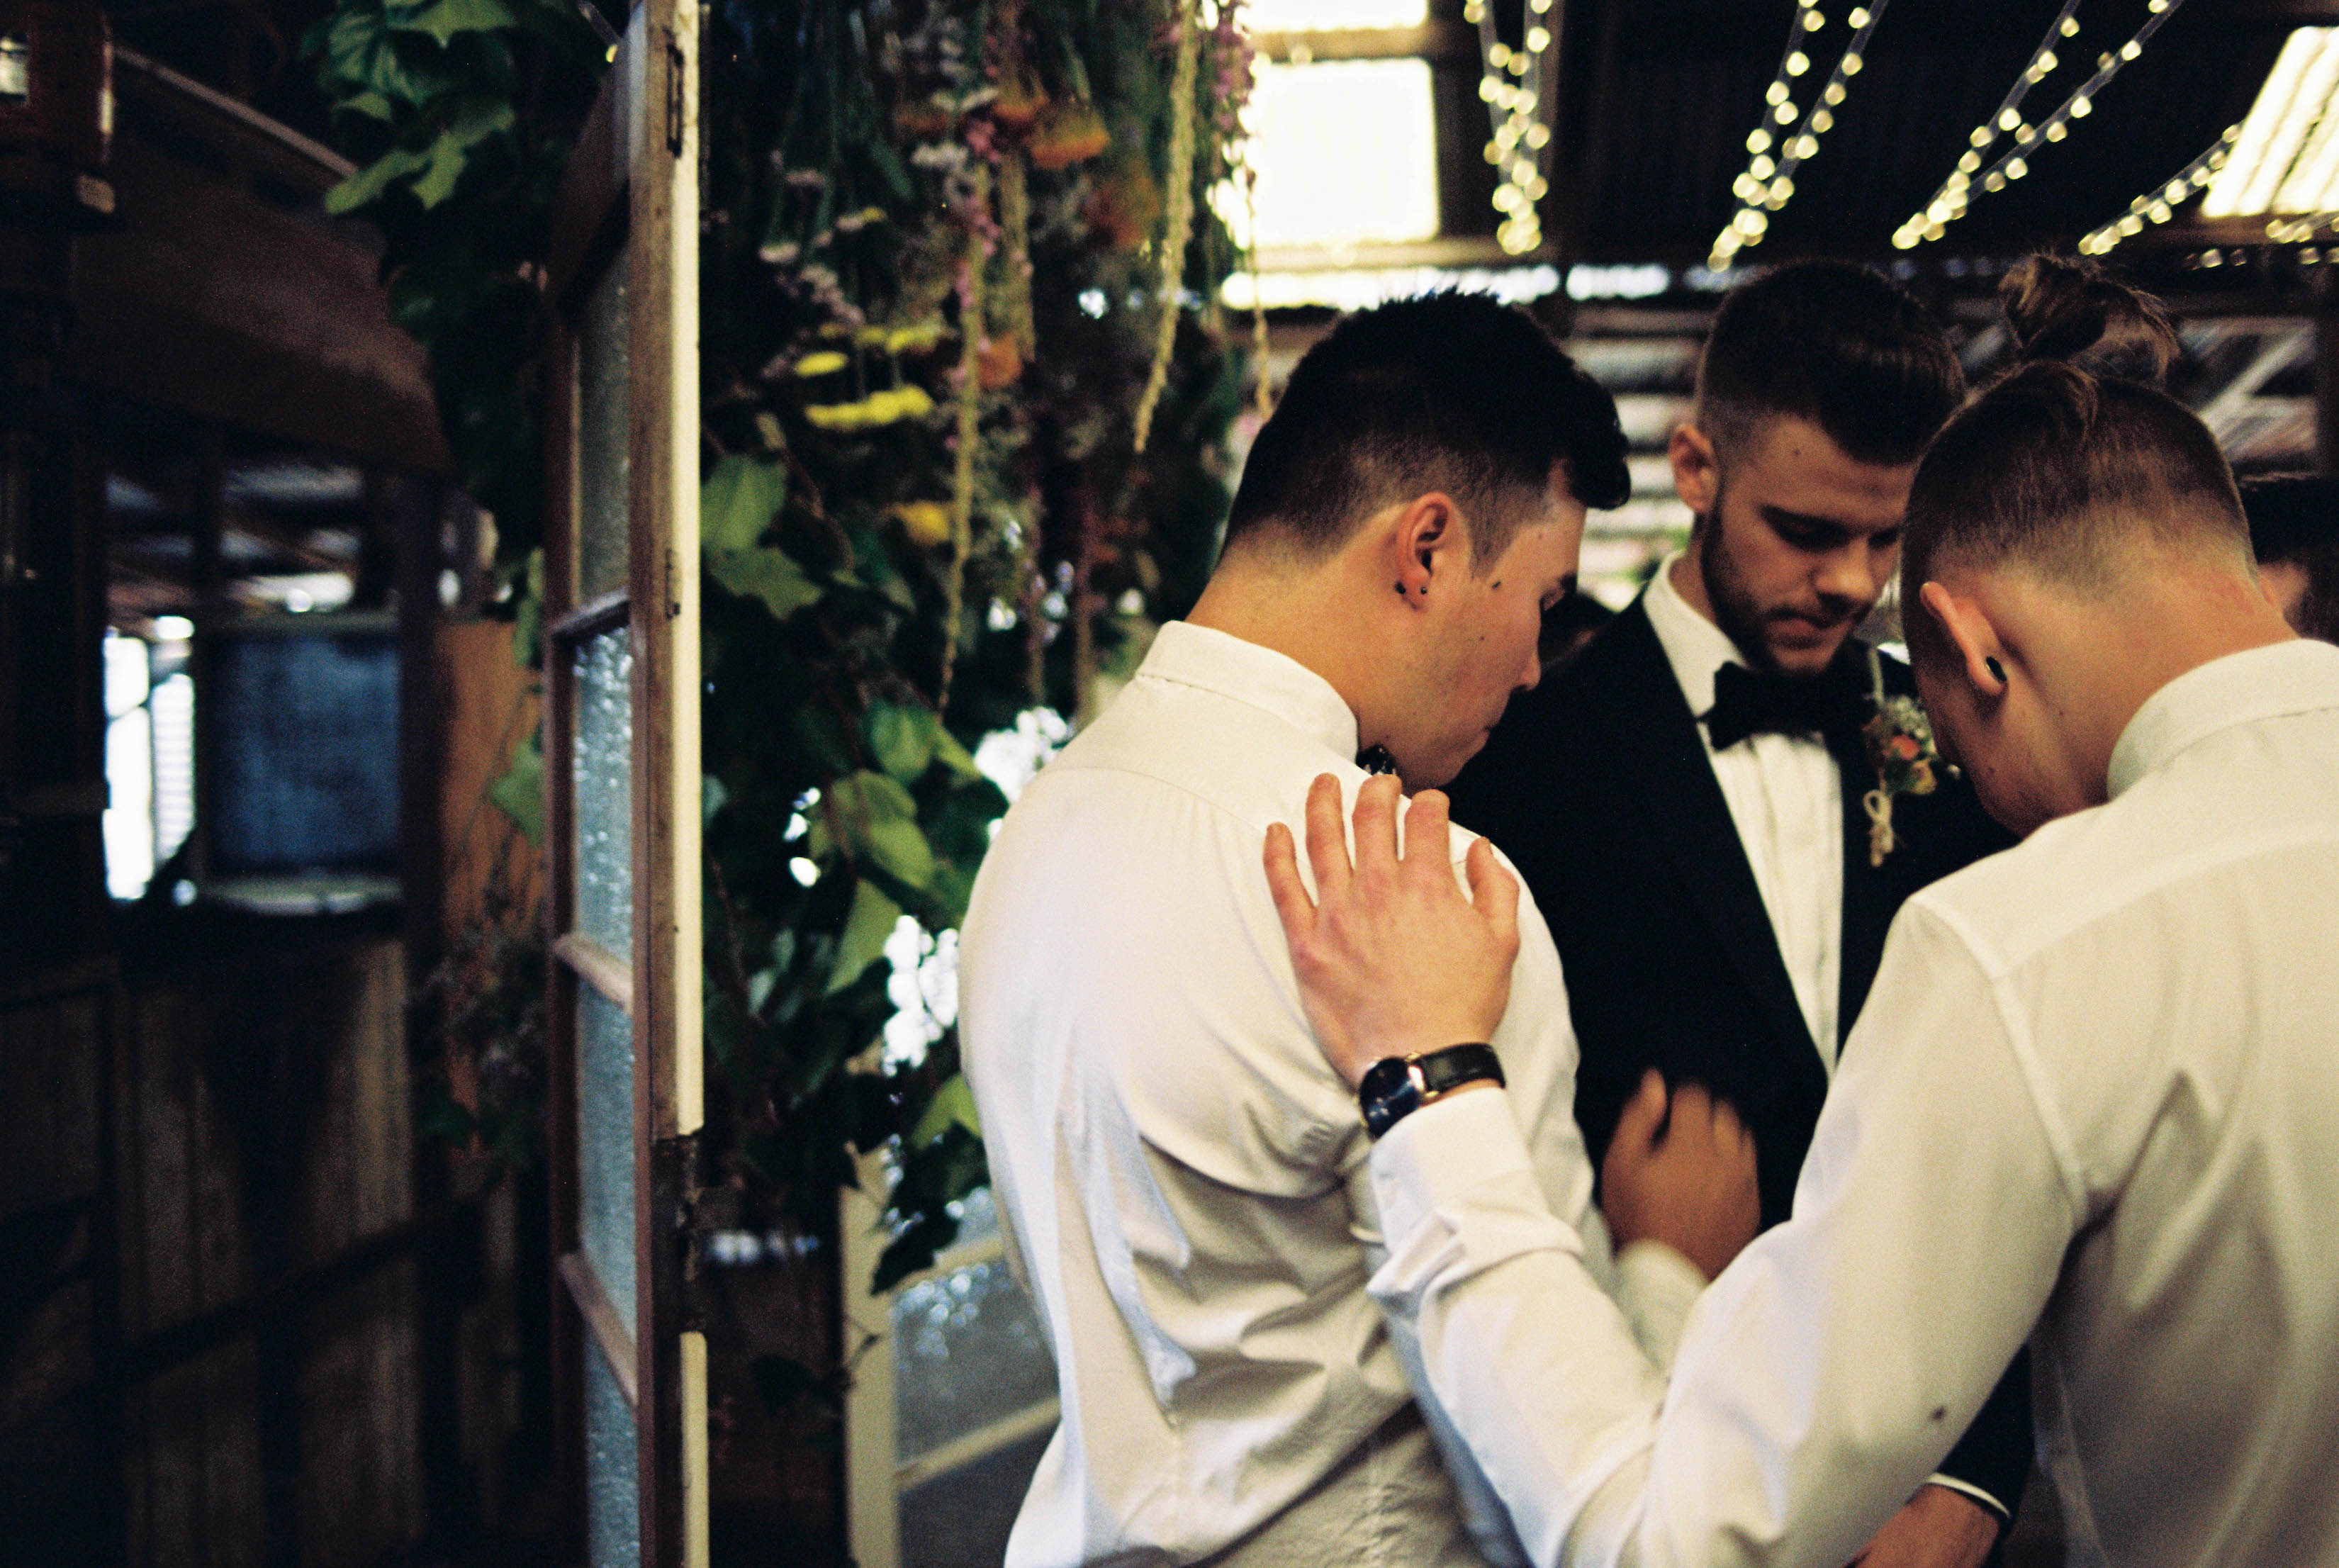 The groom and his groomsmen praying before the wedding ceremony begins